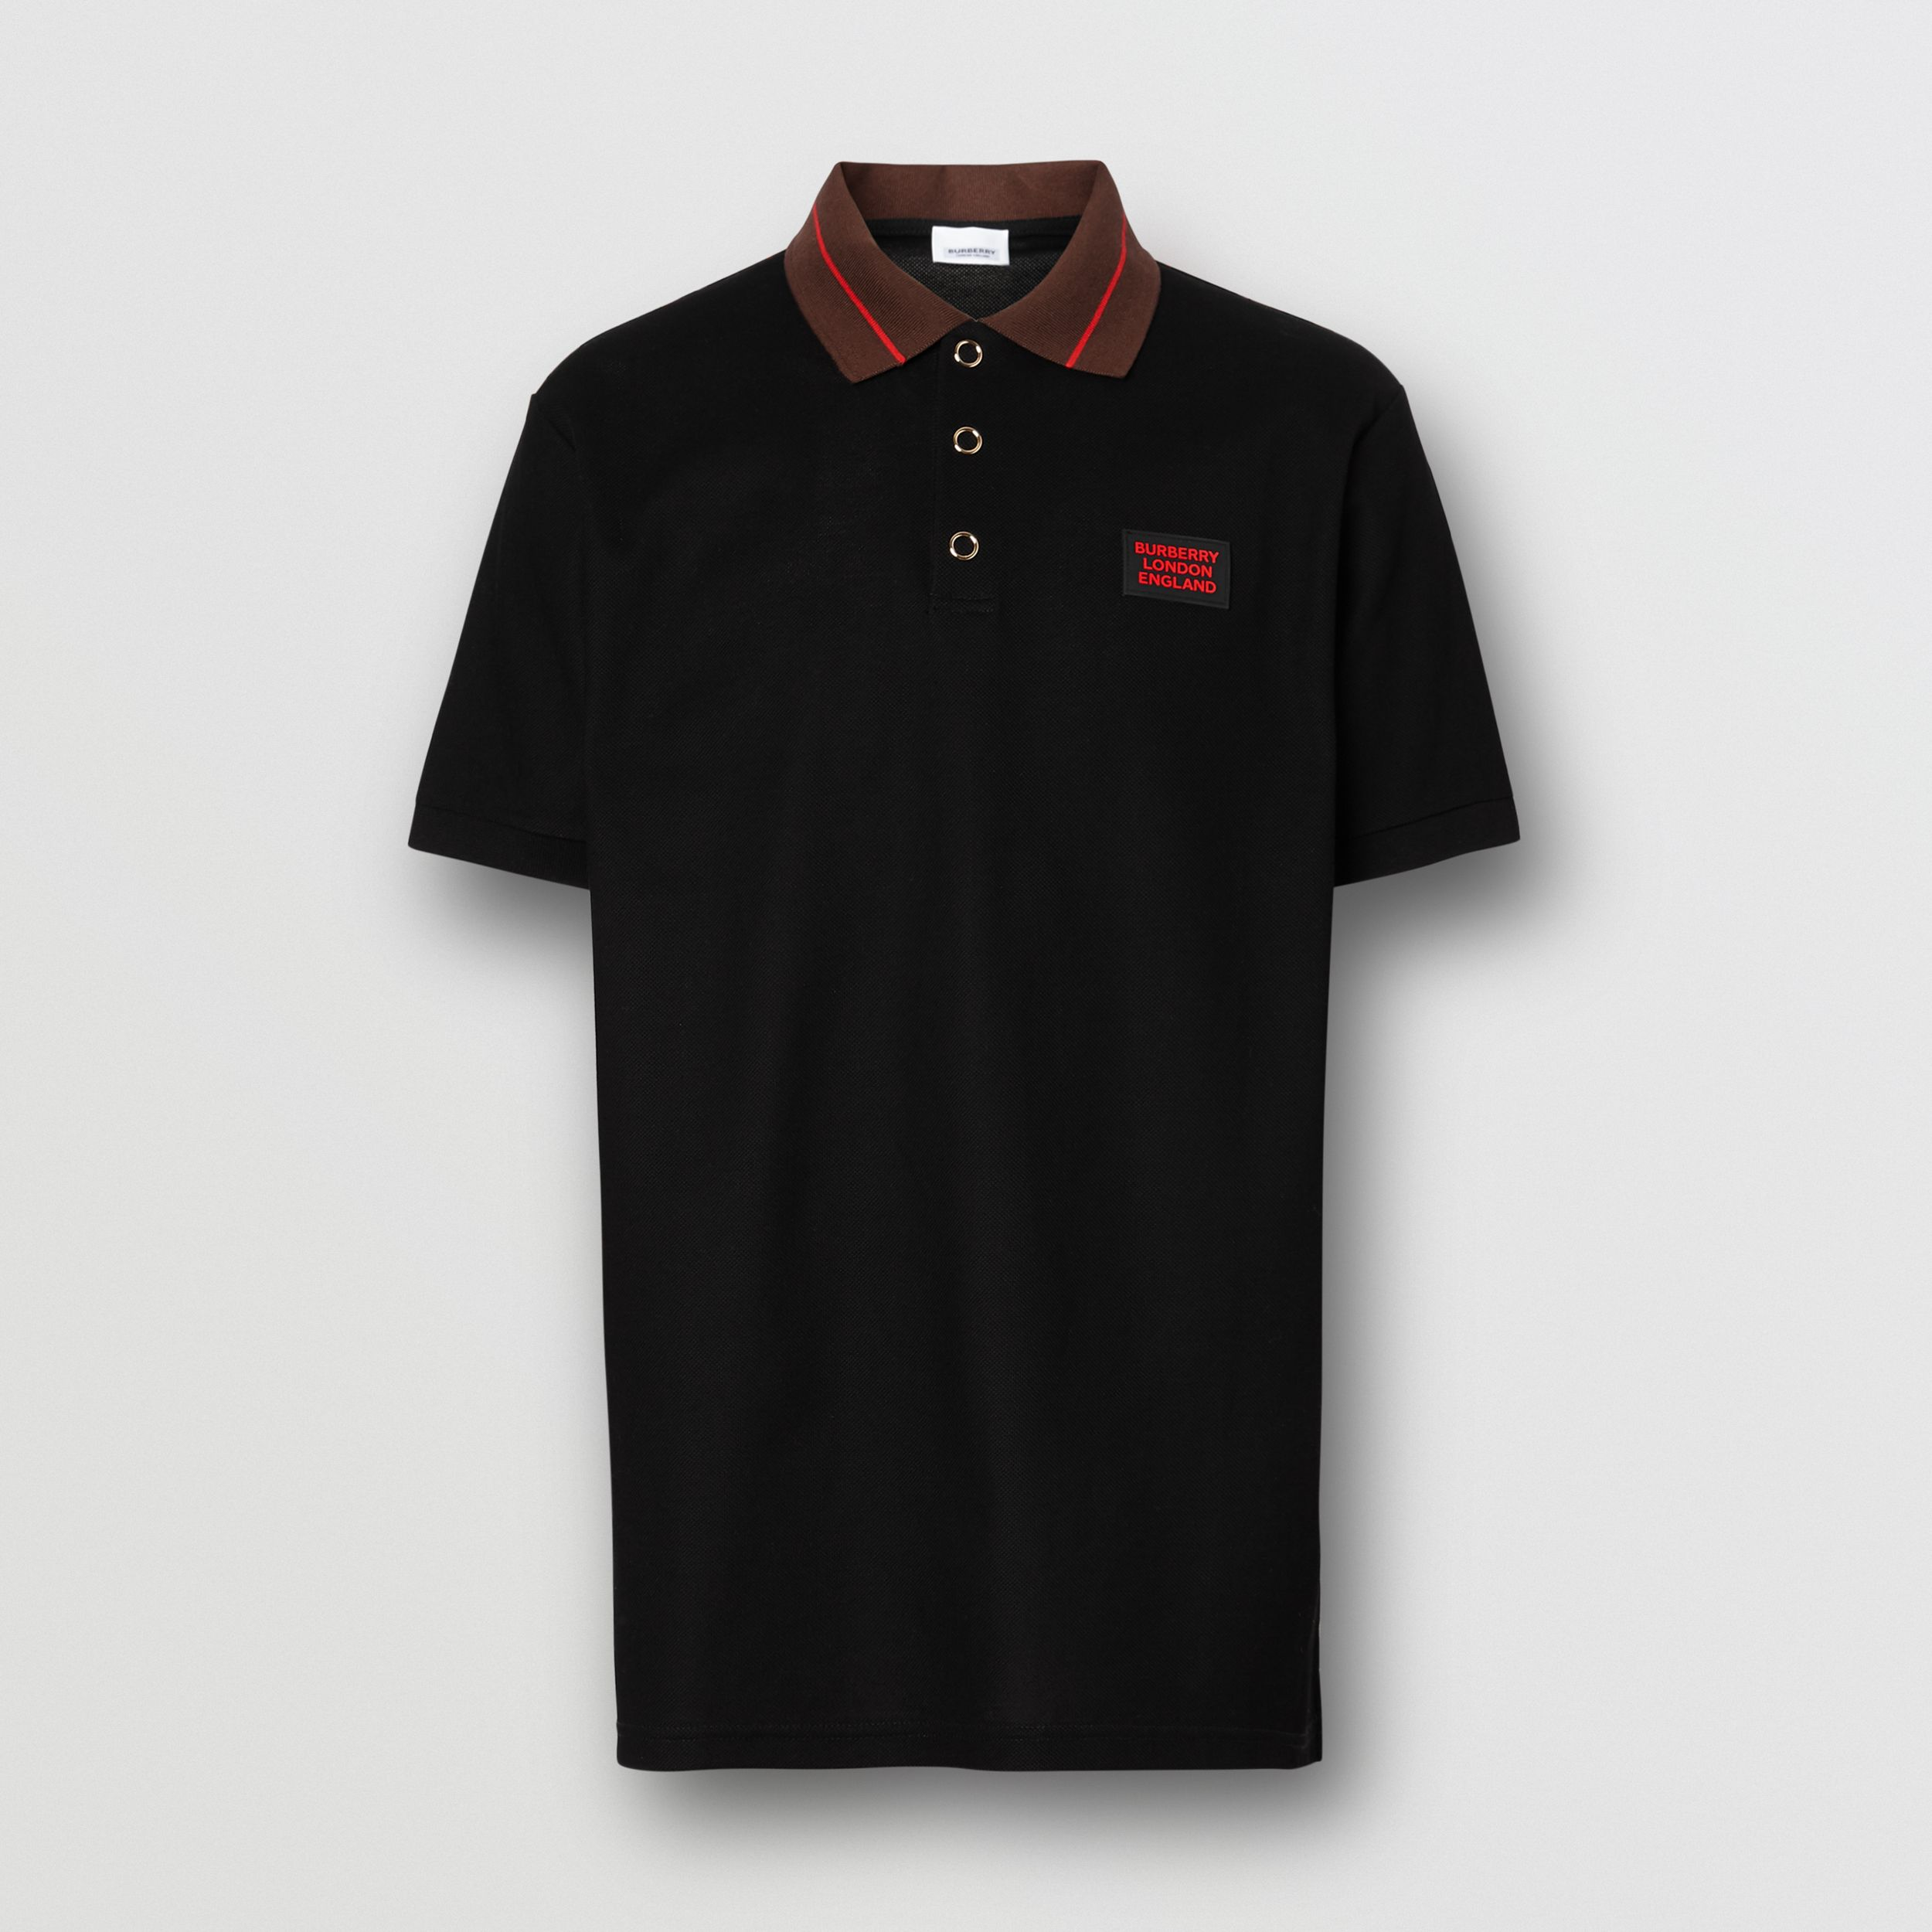 Logo Detail Cotton Piqué Polo Shirt in Black - Men | Burberry - 4